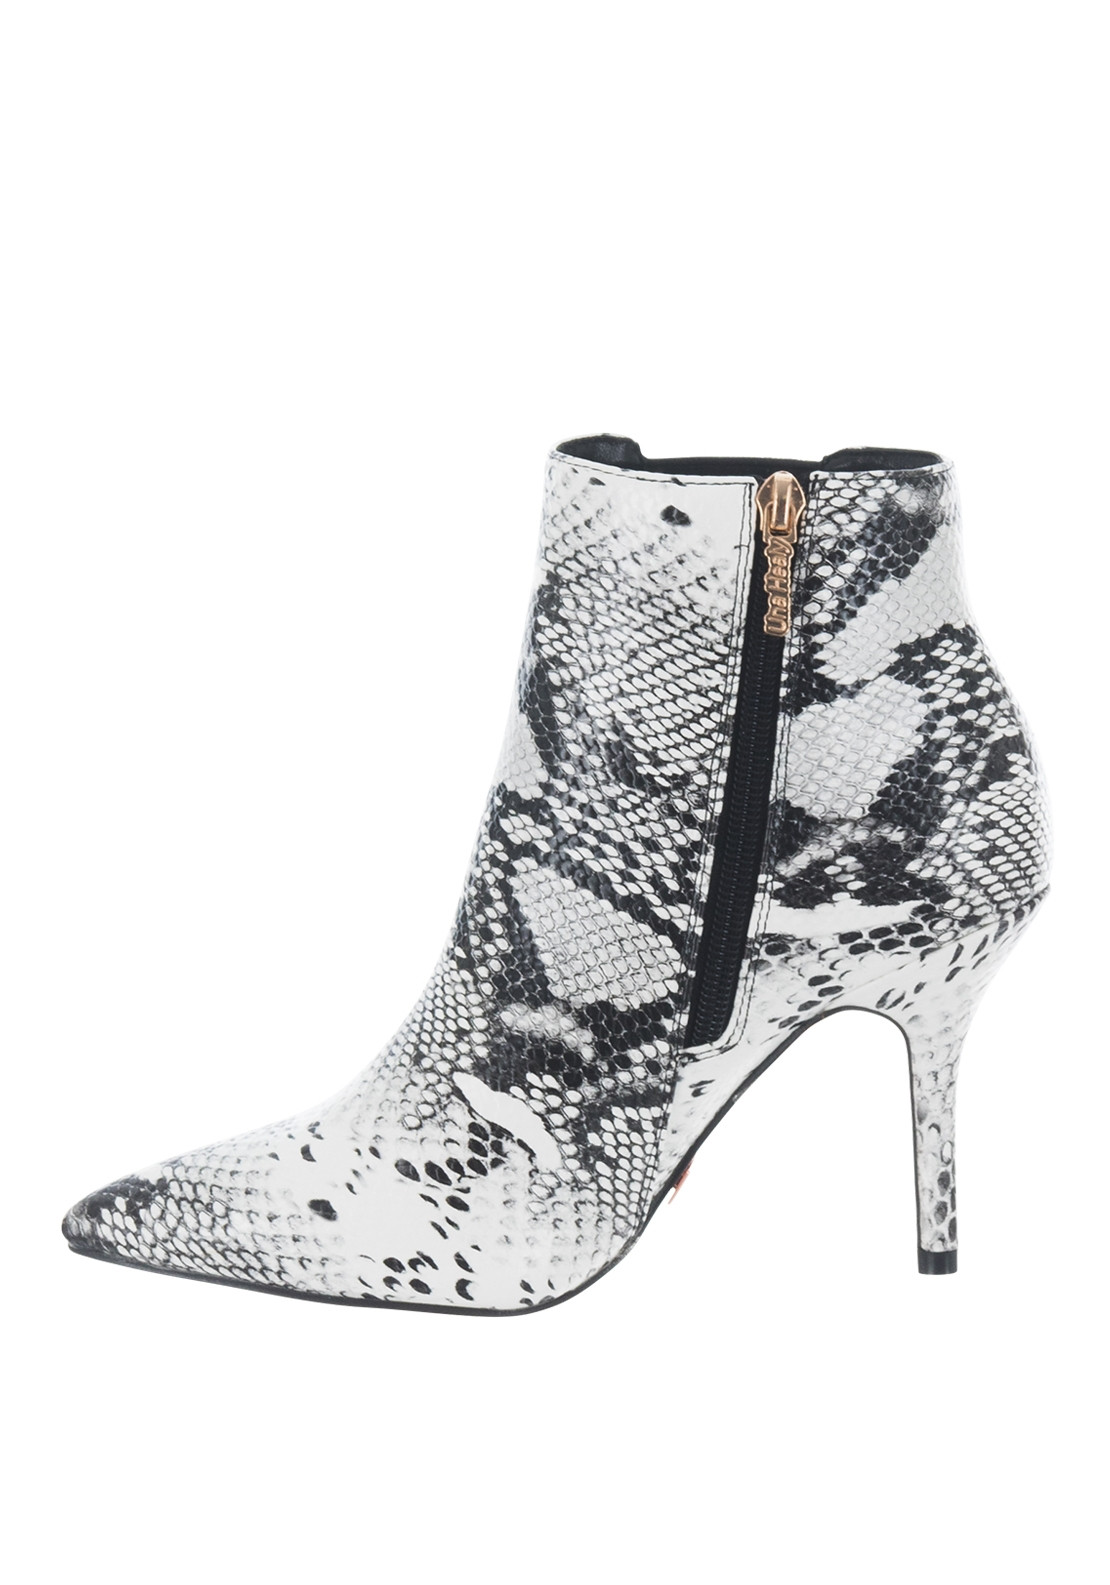 Una Healy Any Girl Heeled Snake Print Boots, White & Black